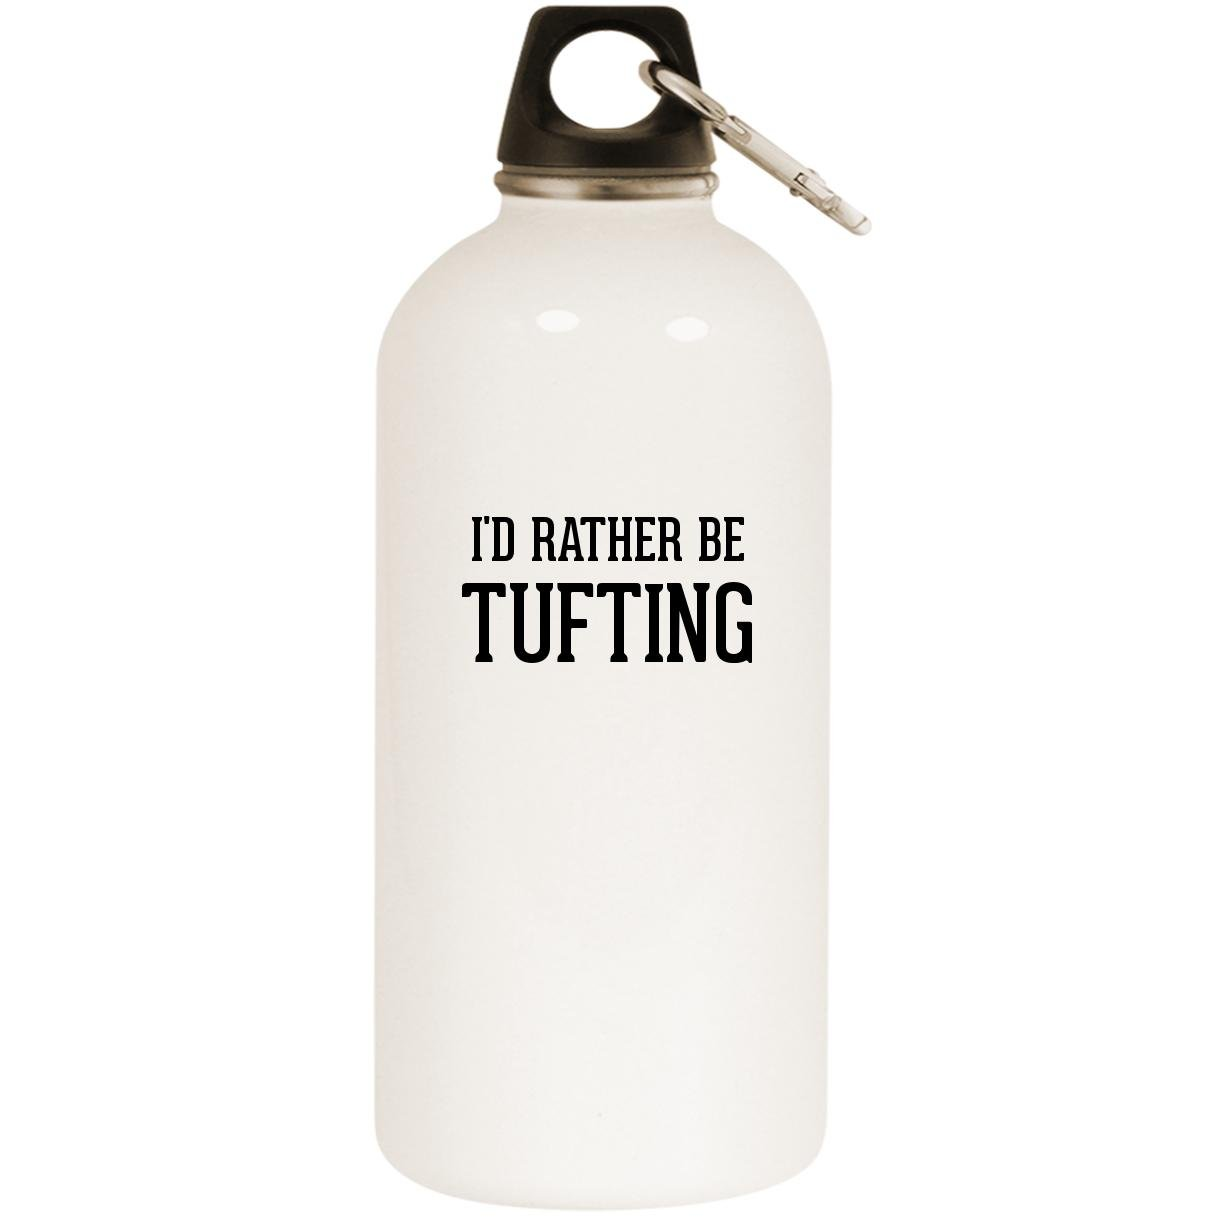 I'd Rather Be TUFTING - White 20oz Stainless Steel Water Bottle with Carabiner